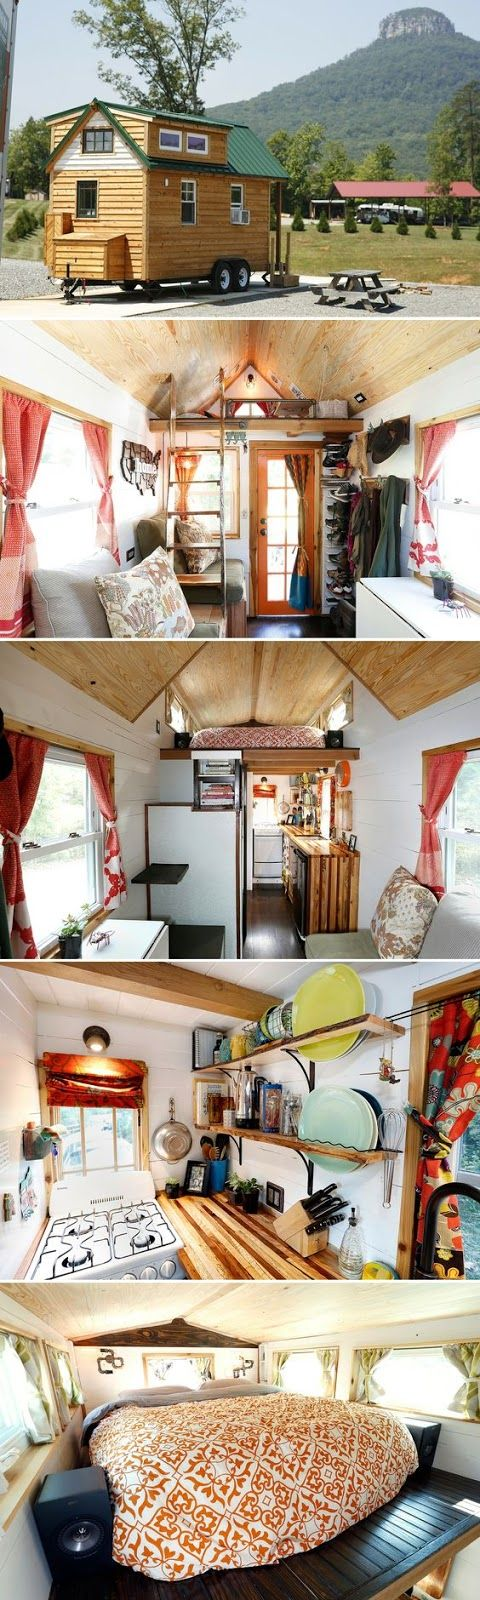 Filmmaker duo, Alexis Stephens and Christian Parsons, created their very own tiny house on wheels, then set out on their new project,...